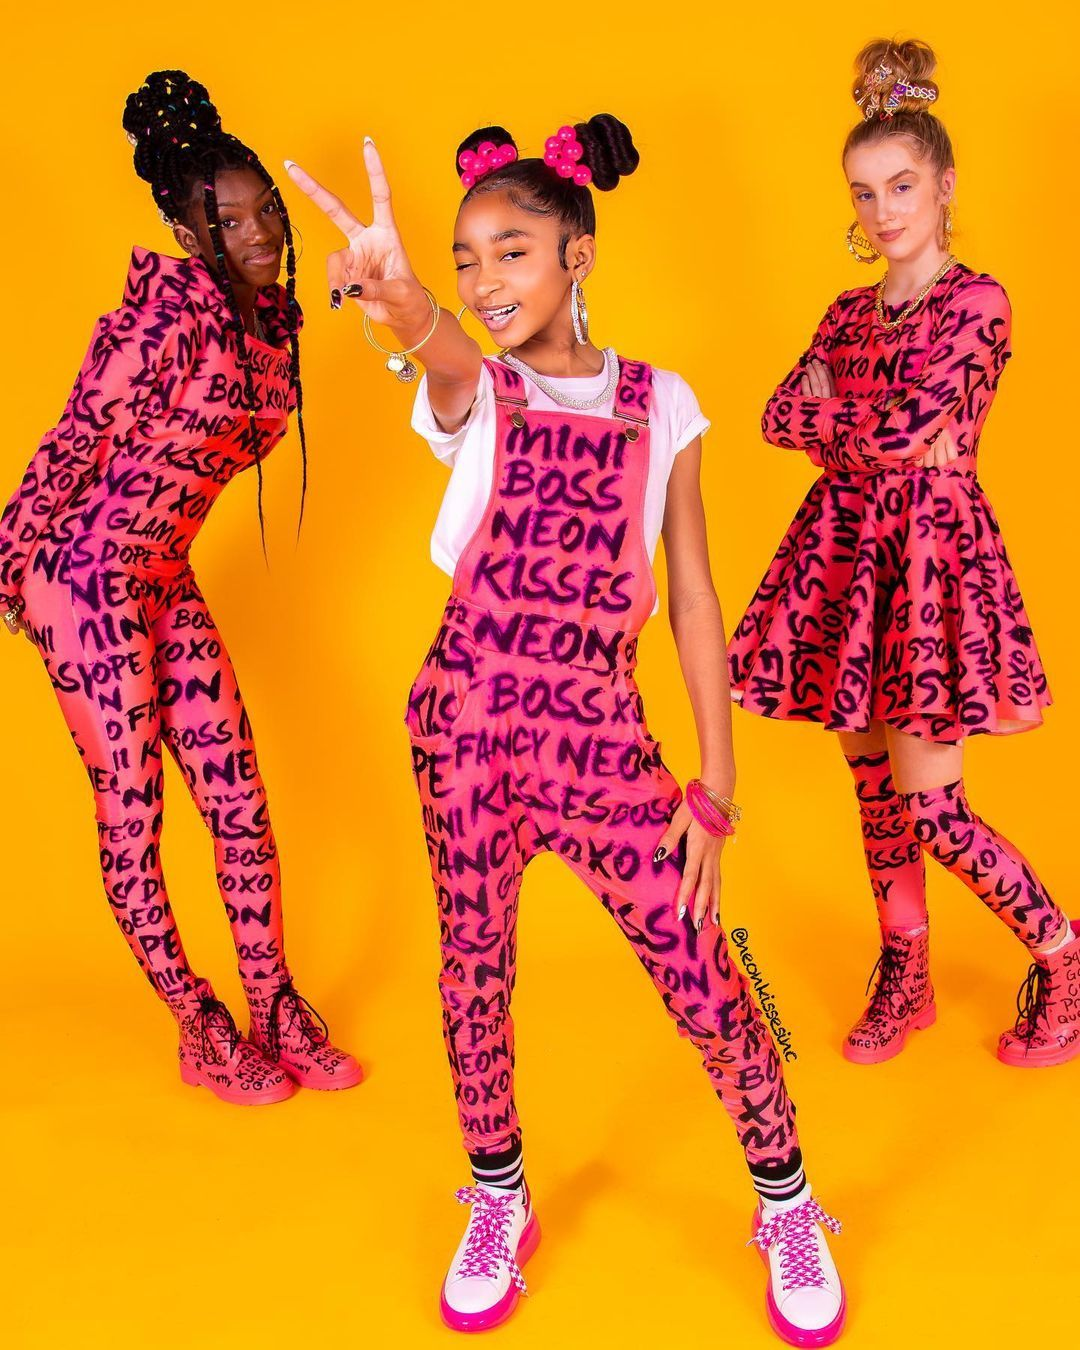 Neon Kisses On Instagram Neon Kisses Drip Lay Lay Tha Slay Gang Don T Play Game Skater Girl Style Outfits Teenage Fashion Outfits Little Girl Outfits